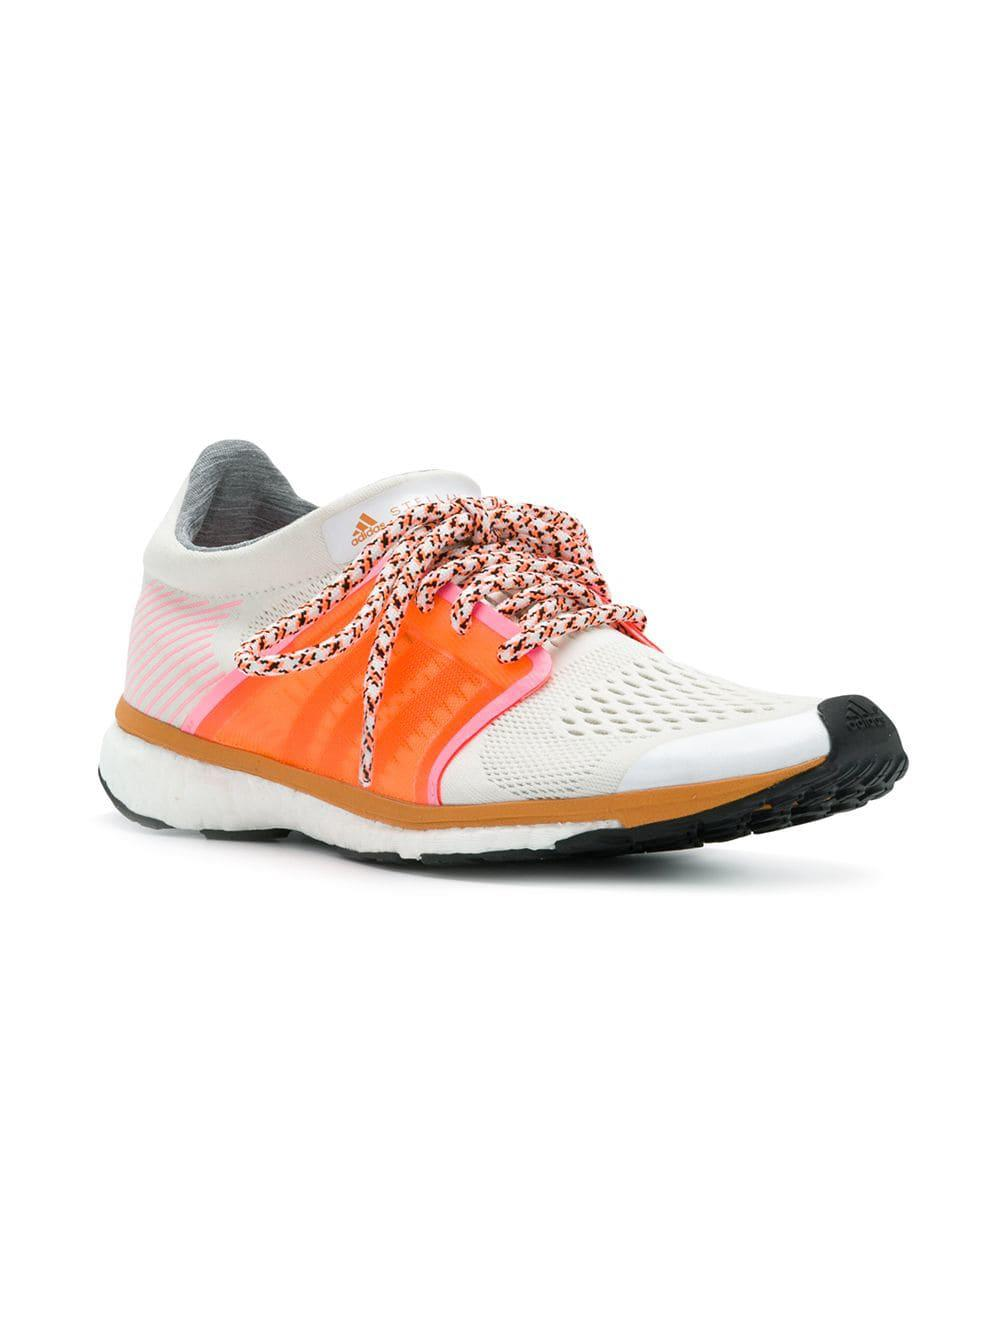 2cc477de9 Lyst - adidas By Stella McCartney Panelled Colour-block Sneakers in White -  Save 49%